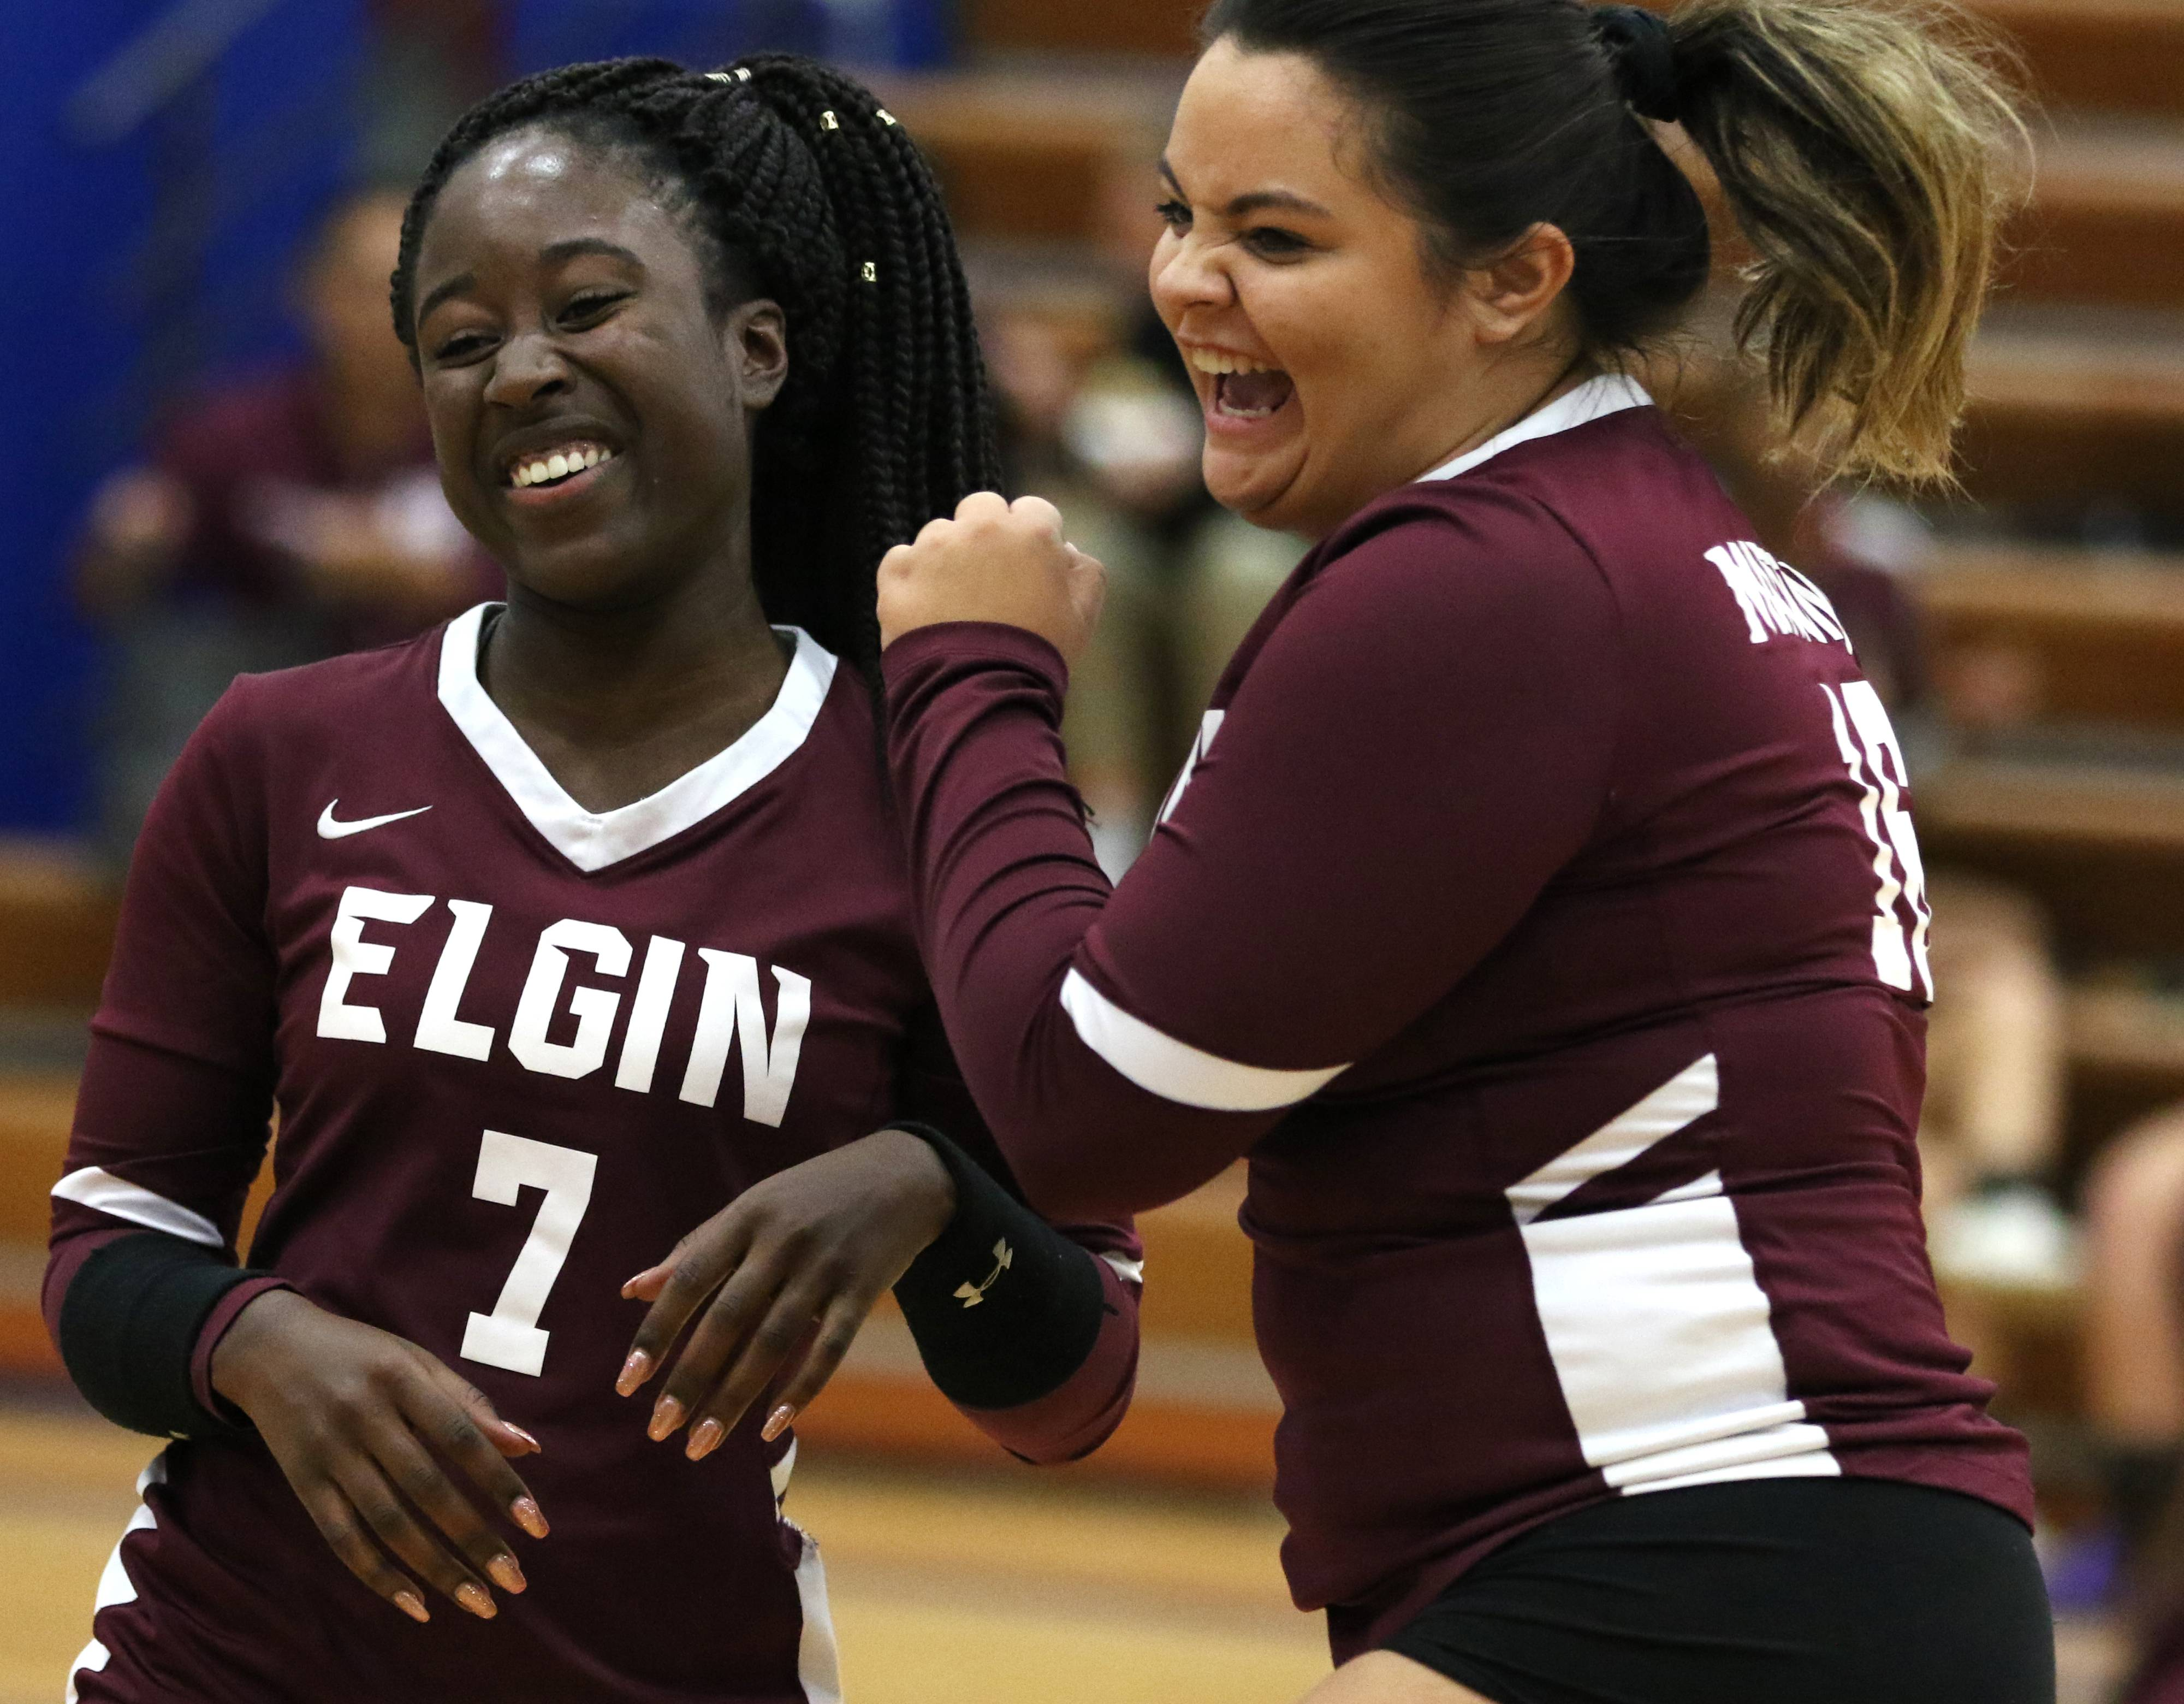 Elgin's Kierra Turpin, left, and Caitlyn Keith are all smiles after winning the first set in varsity girls volleyball at Larkin on Wednesday.